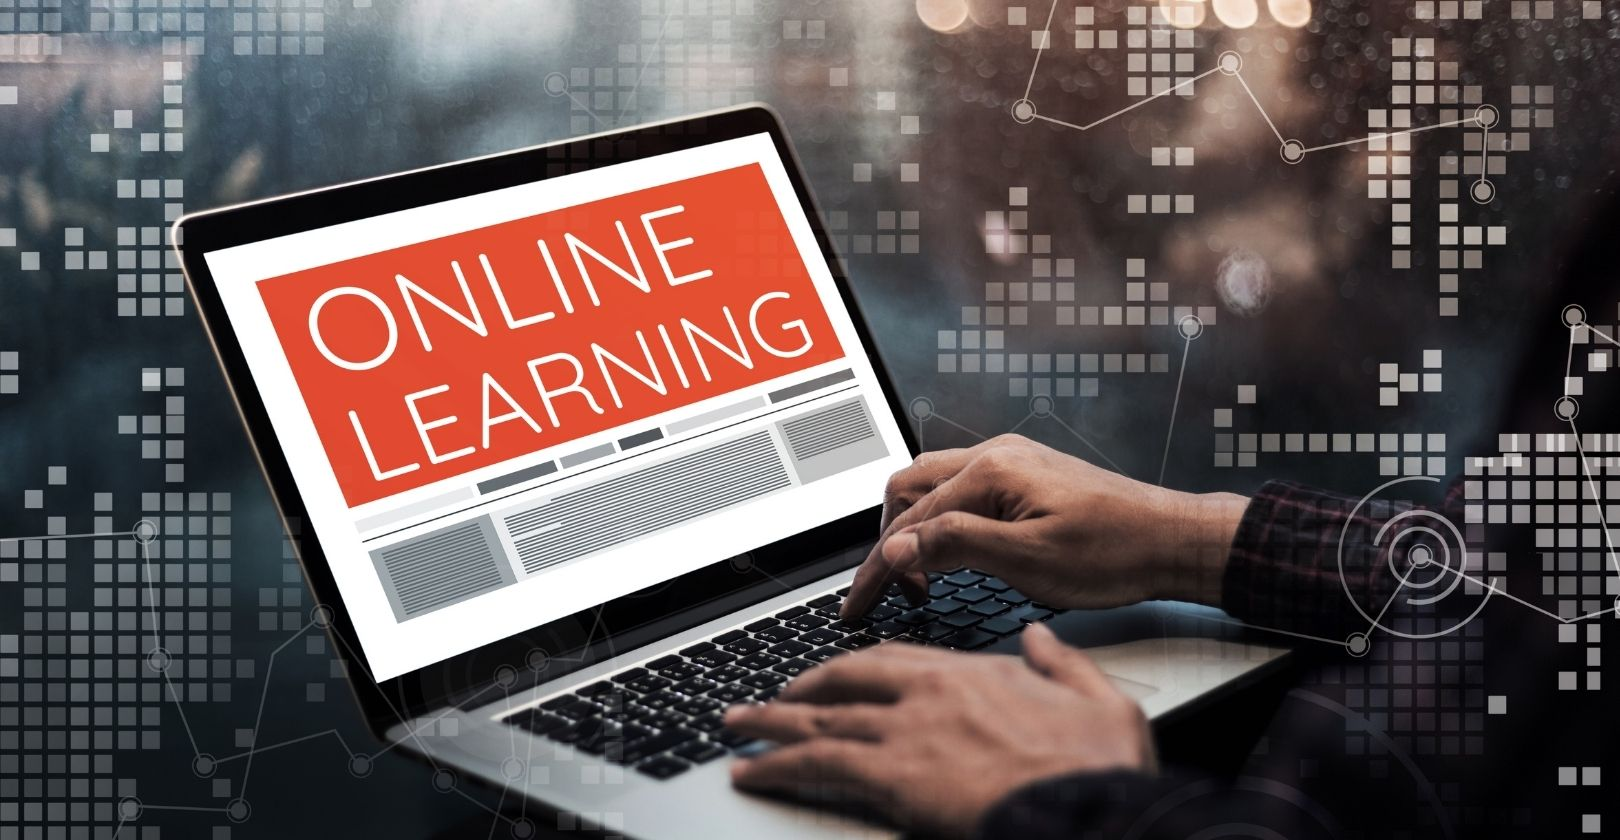 5 Reasons Why Online Learning Is Better Than Classroom Learning 2